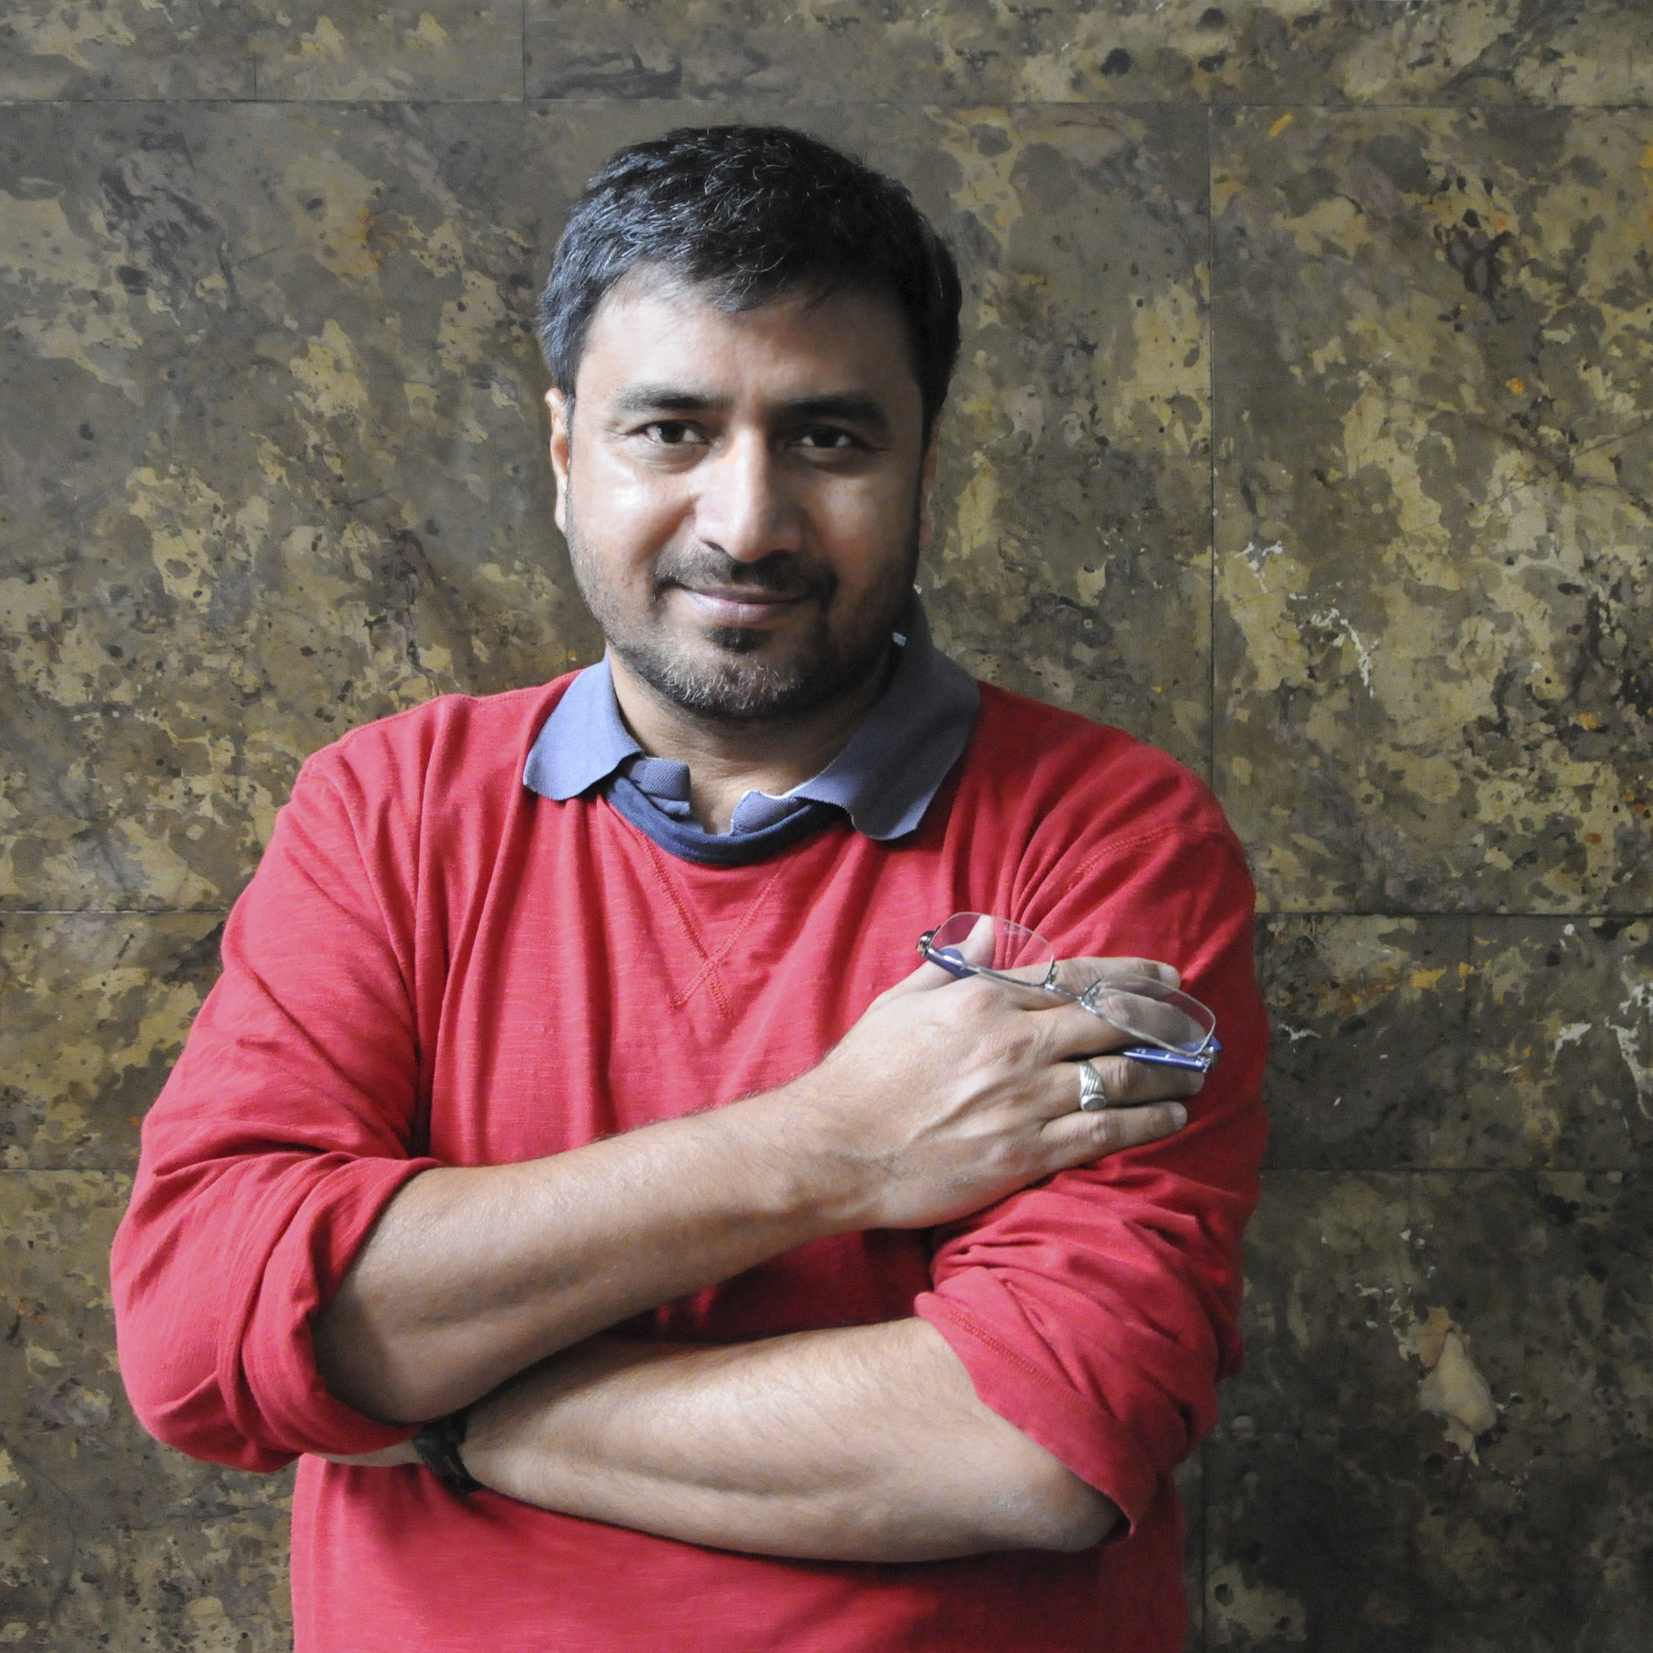 Sudhir Sharma, India